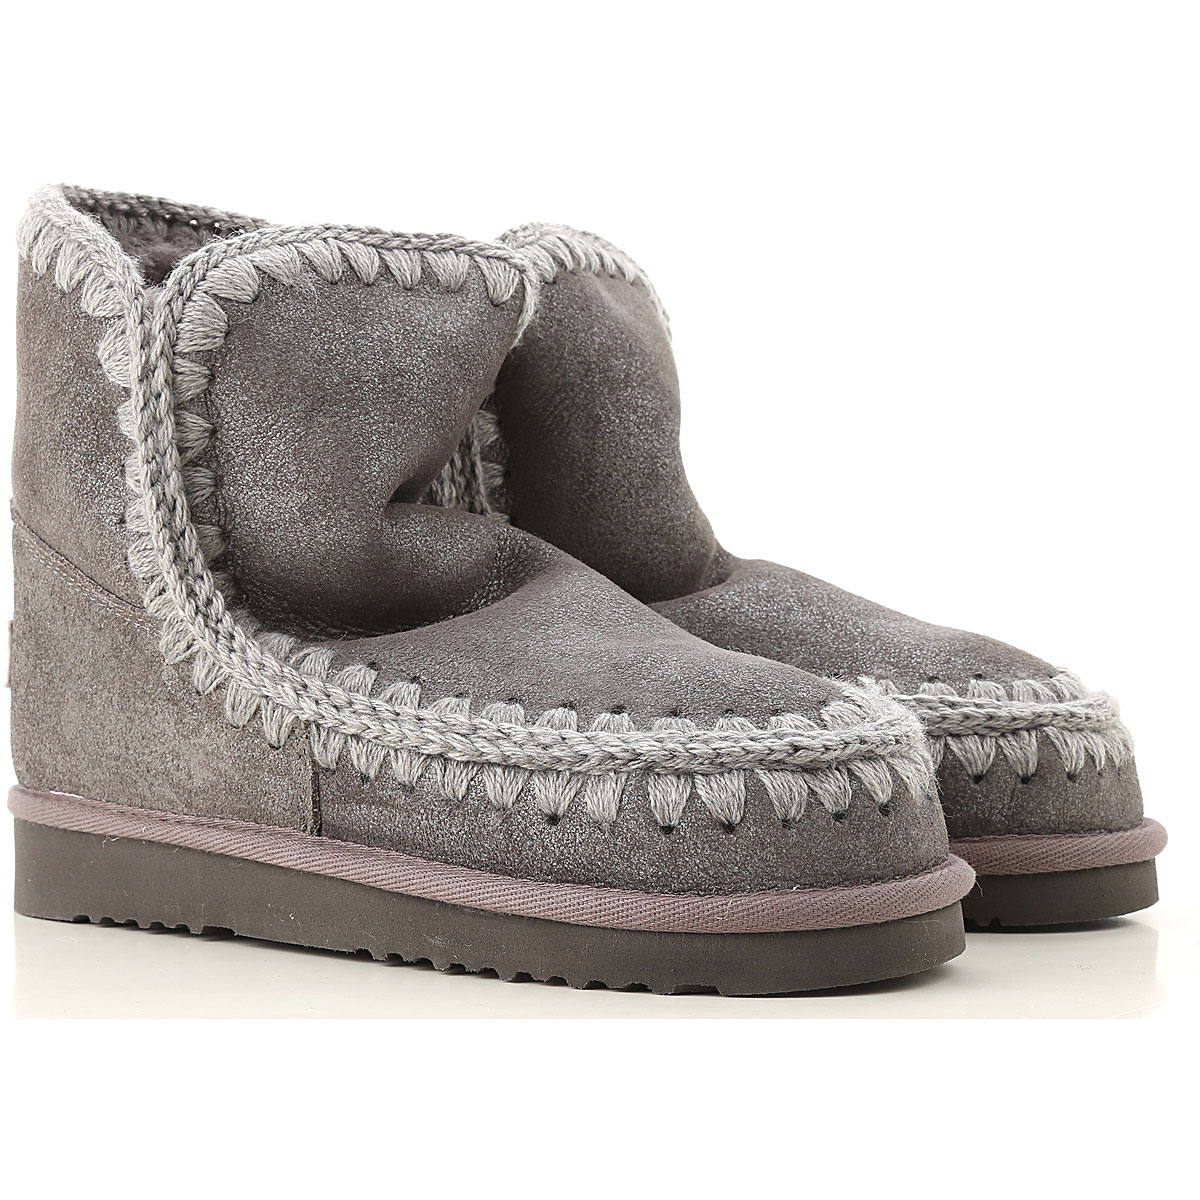 Mou Boots for Women, Booties On Sale, Grey, Leather, 2019, EUR 36 - UK 3 - USA 5.5 EUR 37 - UK 4 - USA 6.5 EUR 38 - UK 5 - USA 7.5